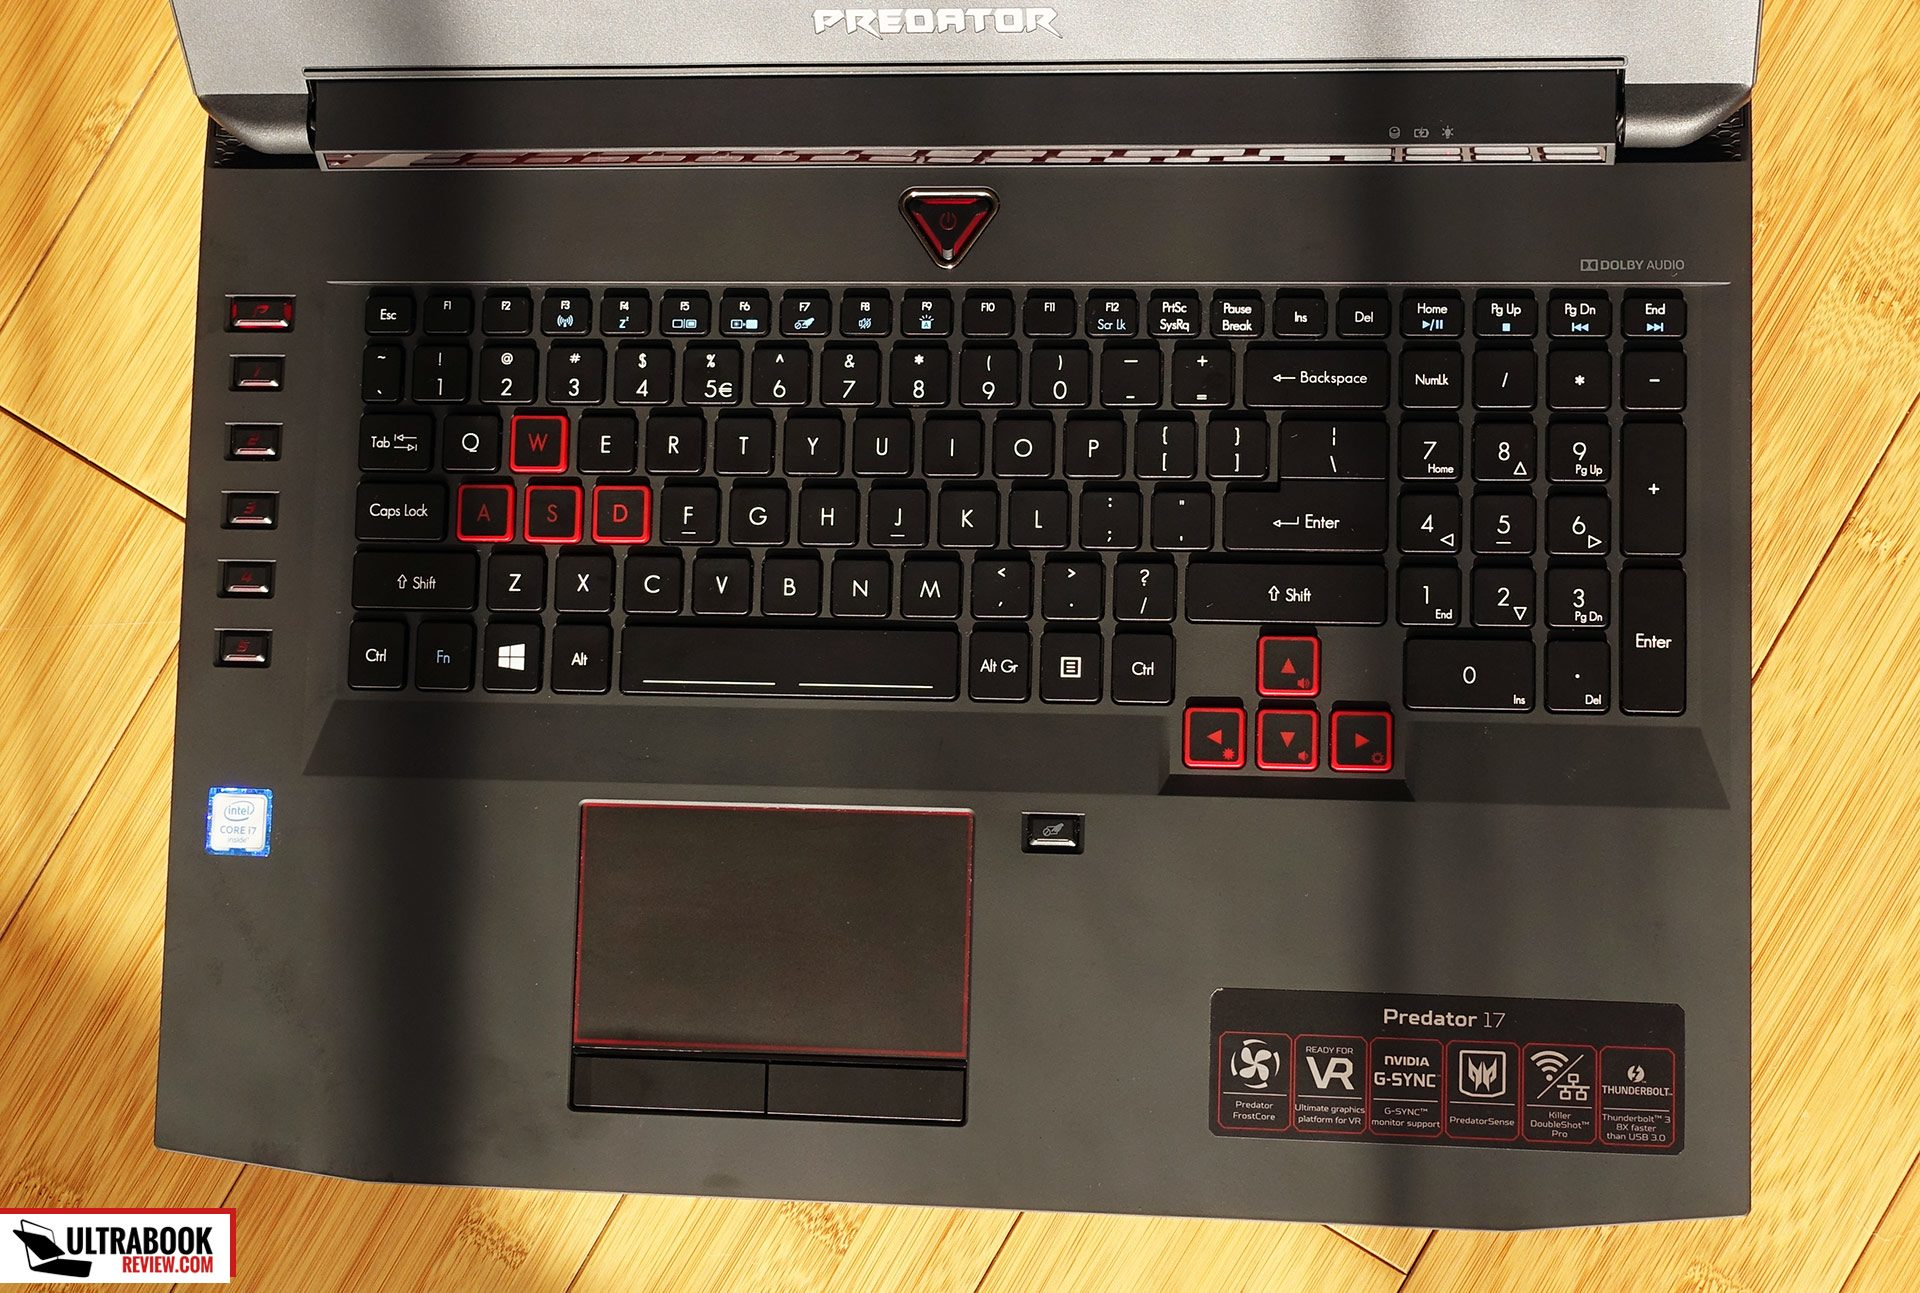 Acer Predator 17 G9 793 Review Gaming Laptop With Nvidia Gtx 1070 Keyboard Diagram The Layout Is Pretty Good Too A Numpad Section And Arrow Keys Slightly Separated From Others Both Physically Aesthetically